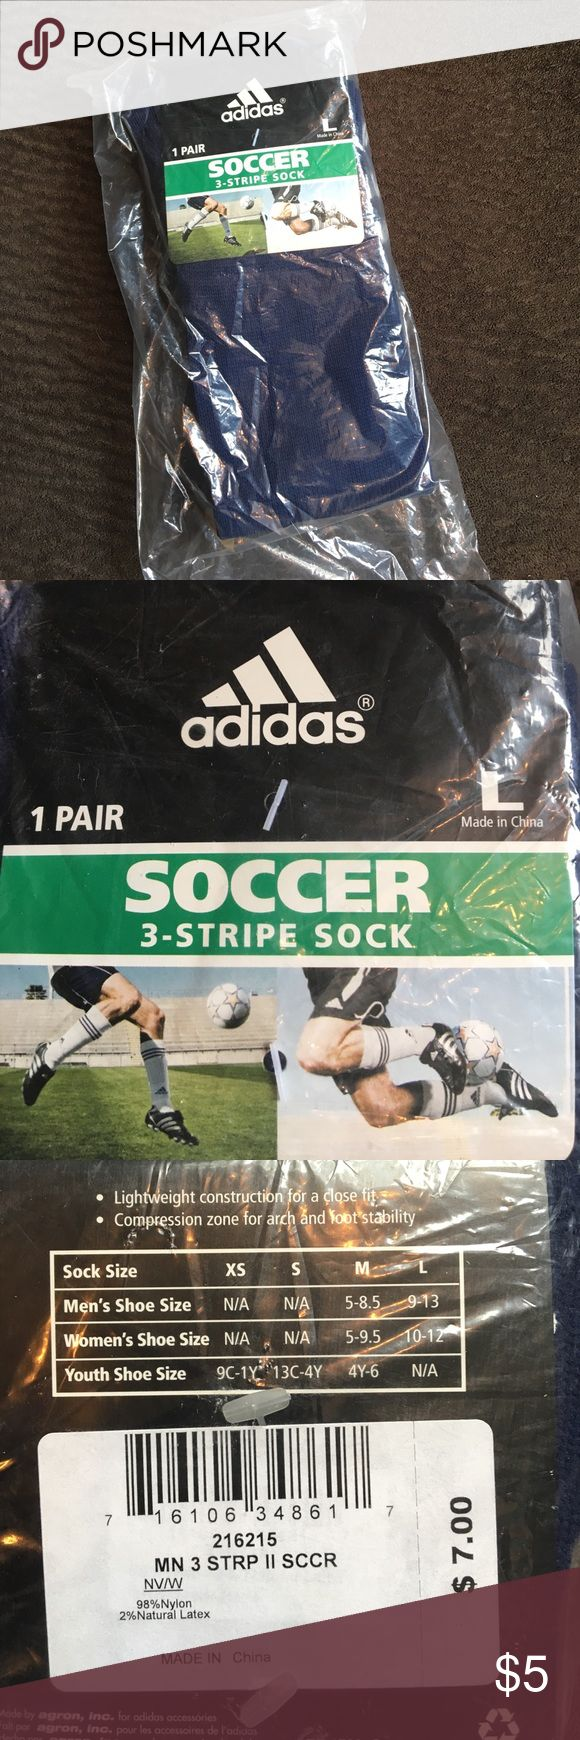 NWT Adidas Soccer Socks New in package navy and white striped soccer socks. Fits men size 9-13 and women size 10-12. adidas Underwear & Socks Athletic Socks